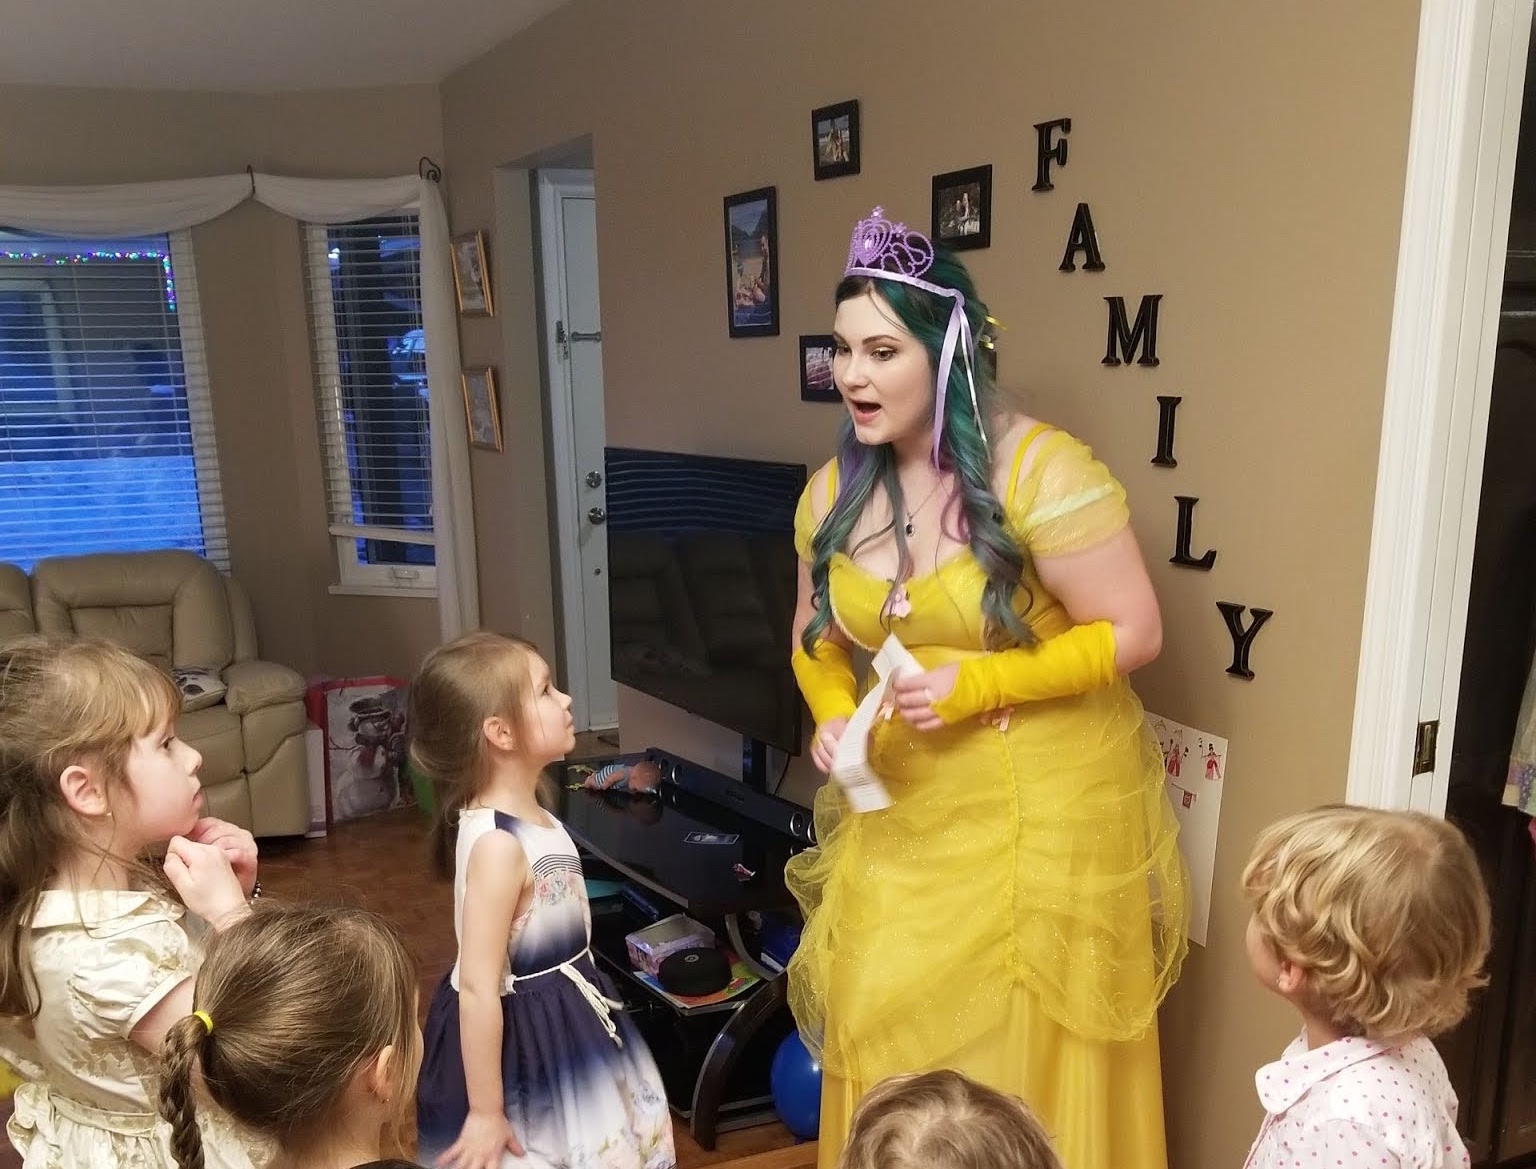 The Fairy of Kindness party